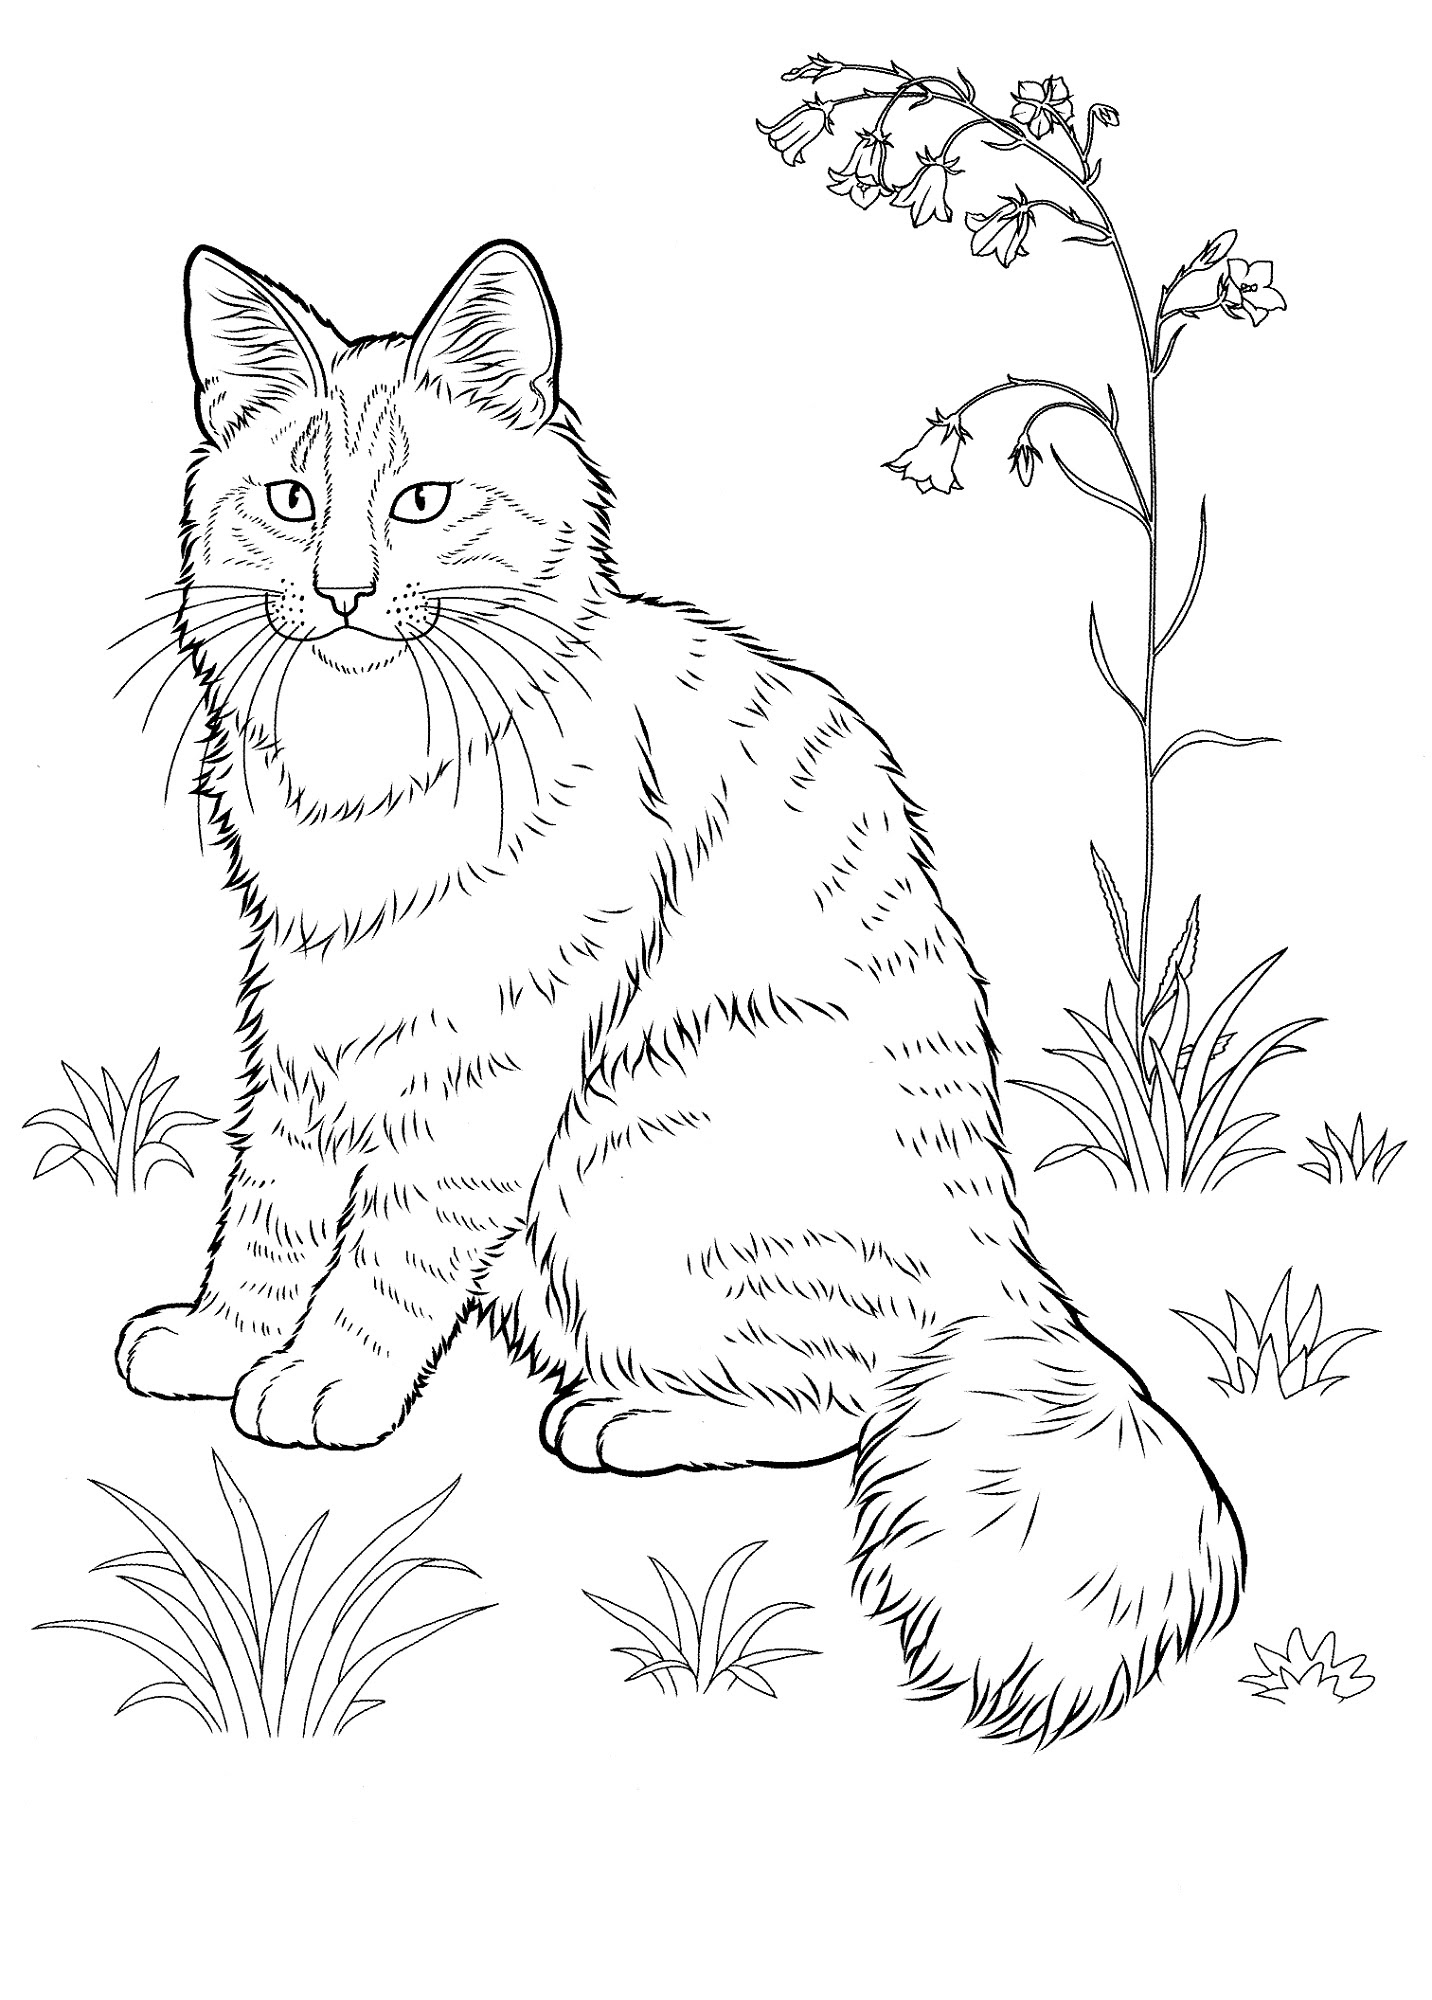 Adorable Cat Coloring Pages | Learning Printable